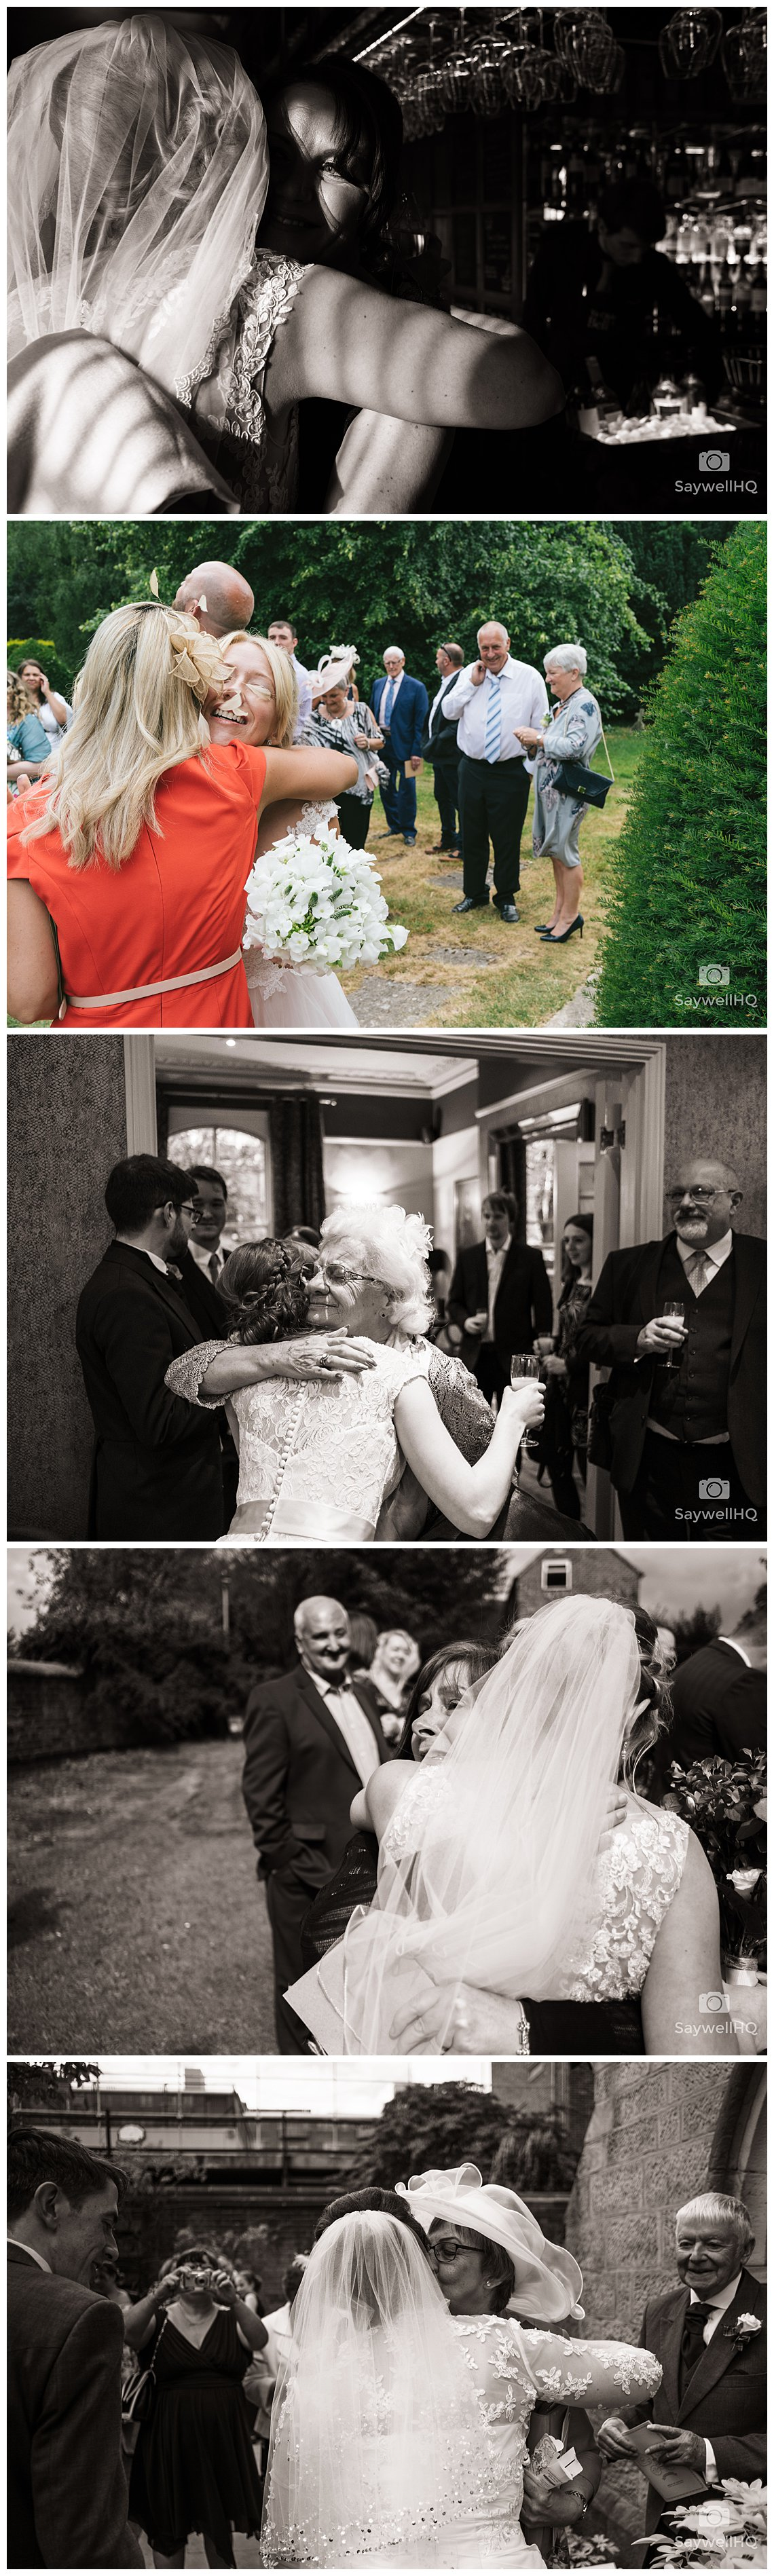 Nottingham wedding photography - emotional wedding hugs